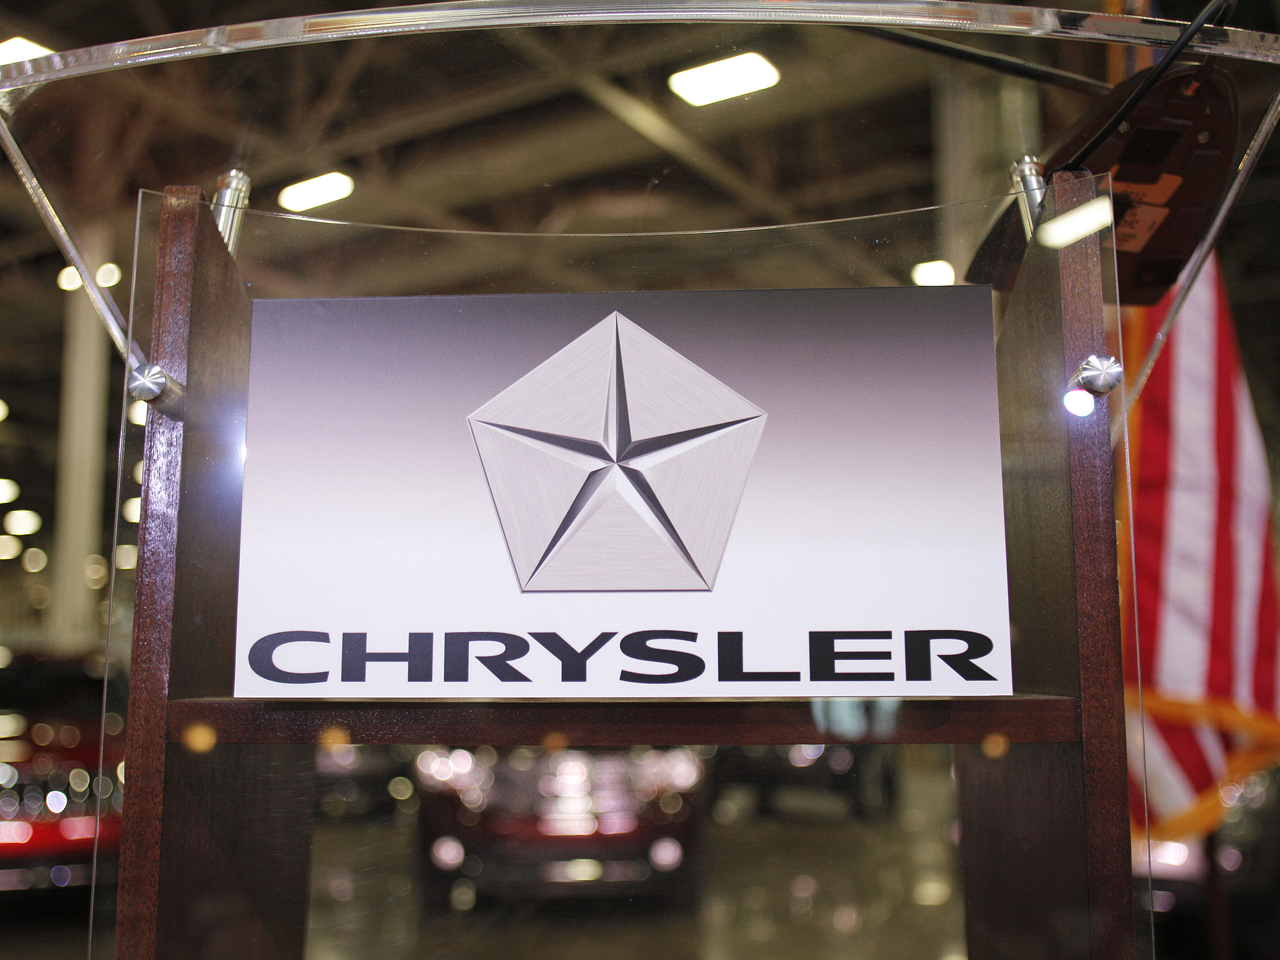 Auto group says nerve center defect behind Chrysler problems (Photo by Bill Pugliano/Getty Images)